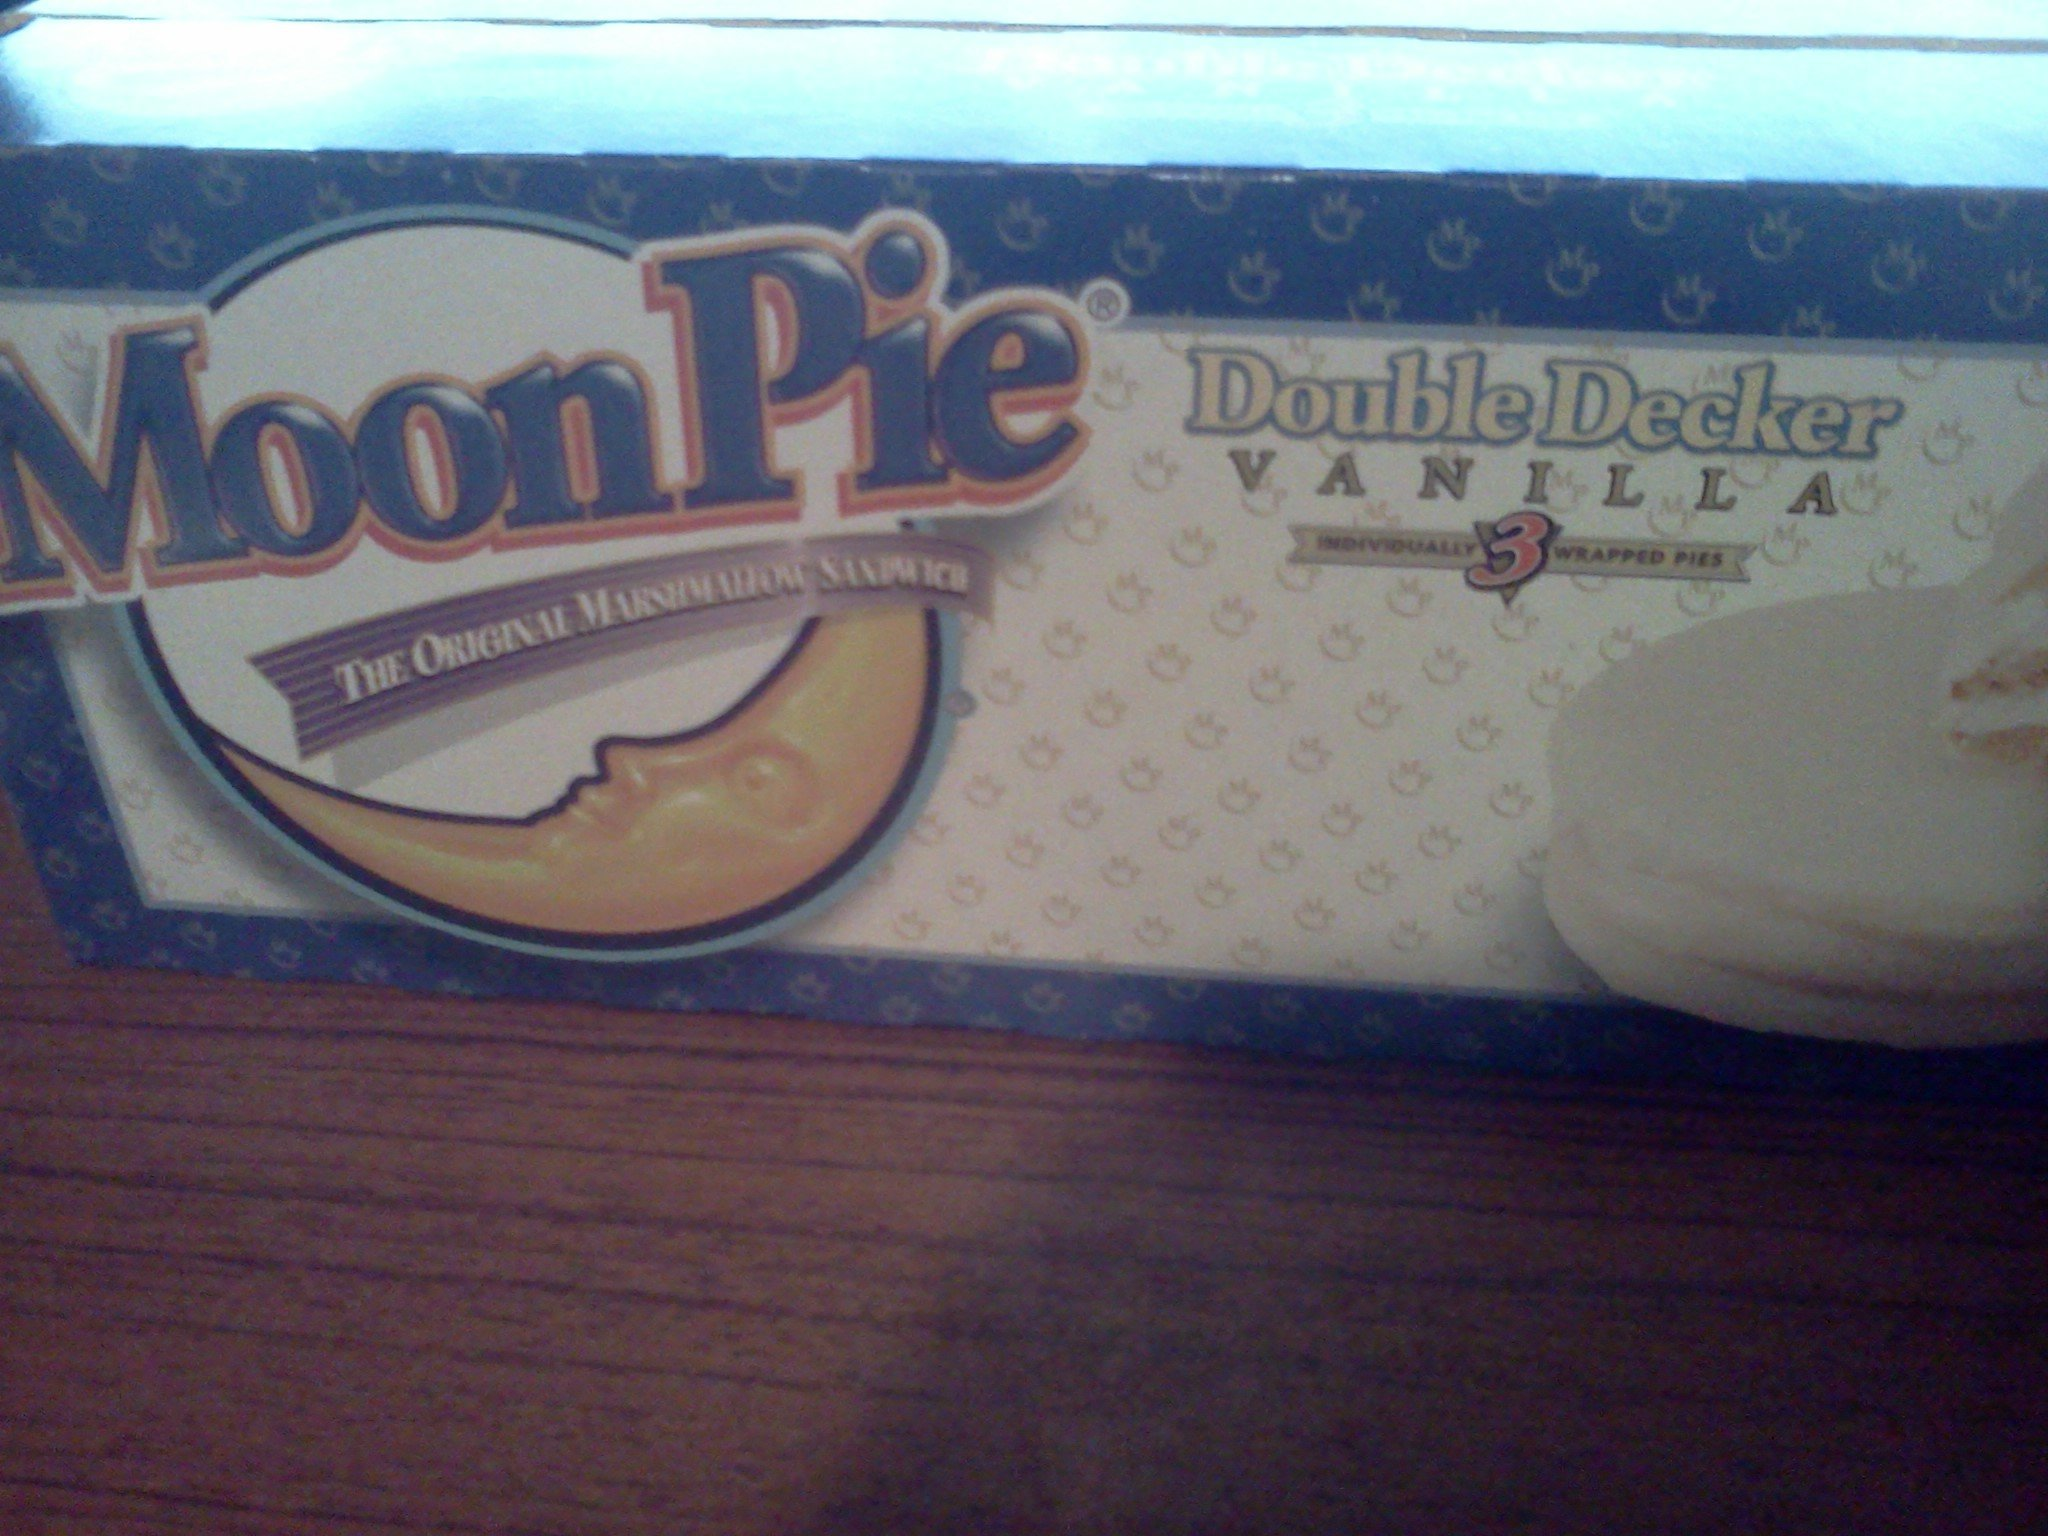 Moon Pie Vanilla Double Decker Marshmallow Sandwich by MoonPie